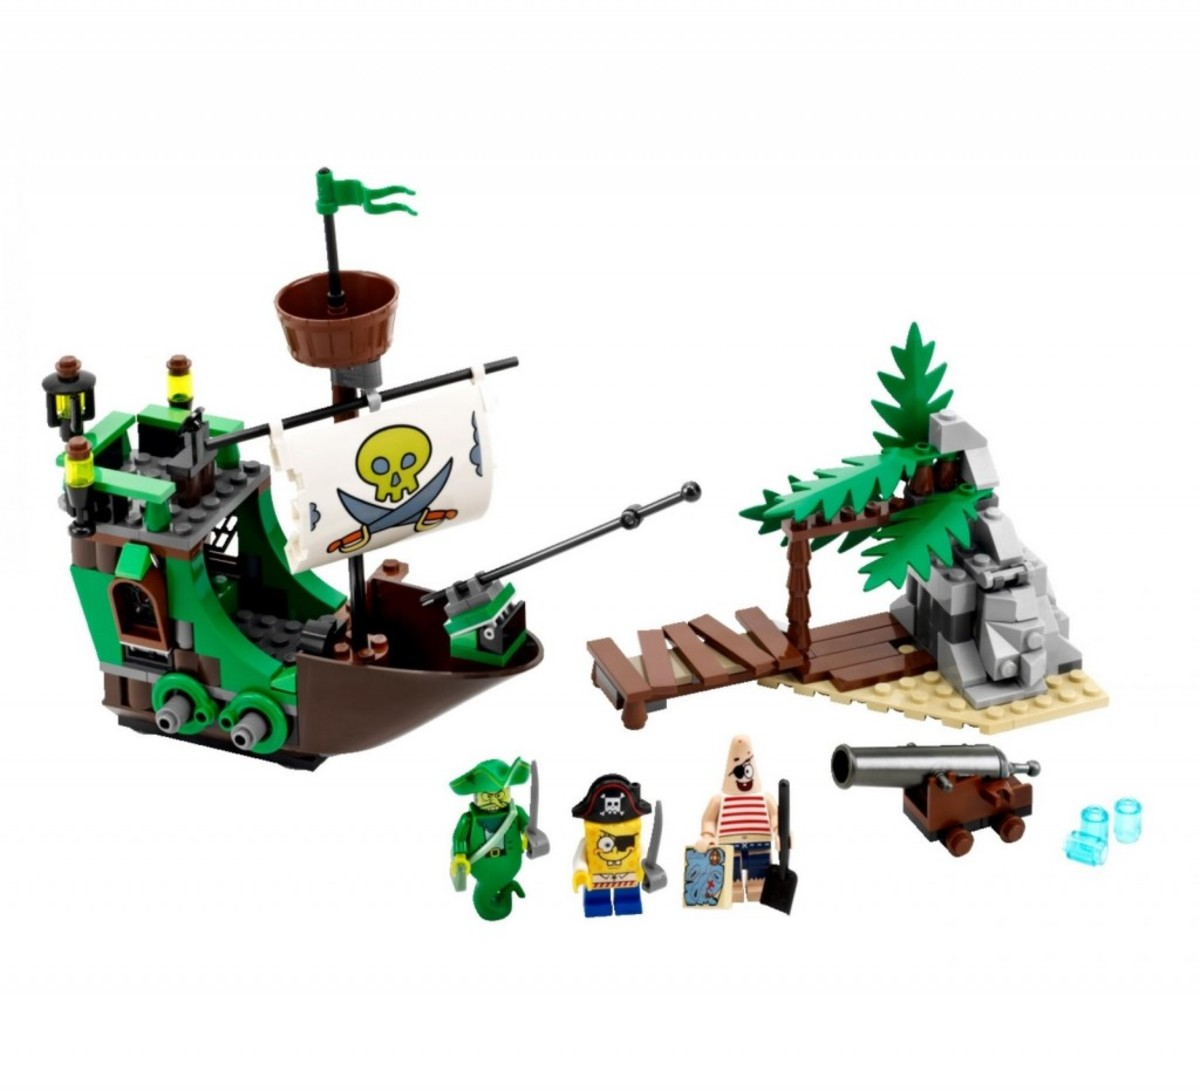 LEGO SpongeBob SquarePants The Flying Dutchman 3817 Assembled